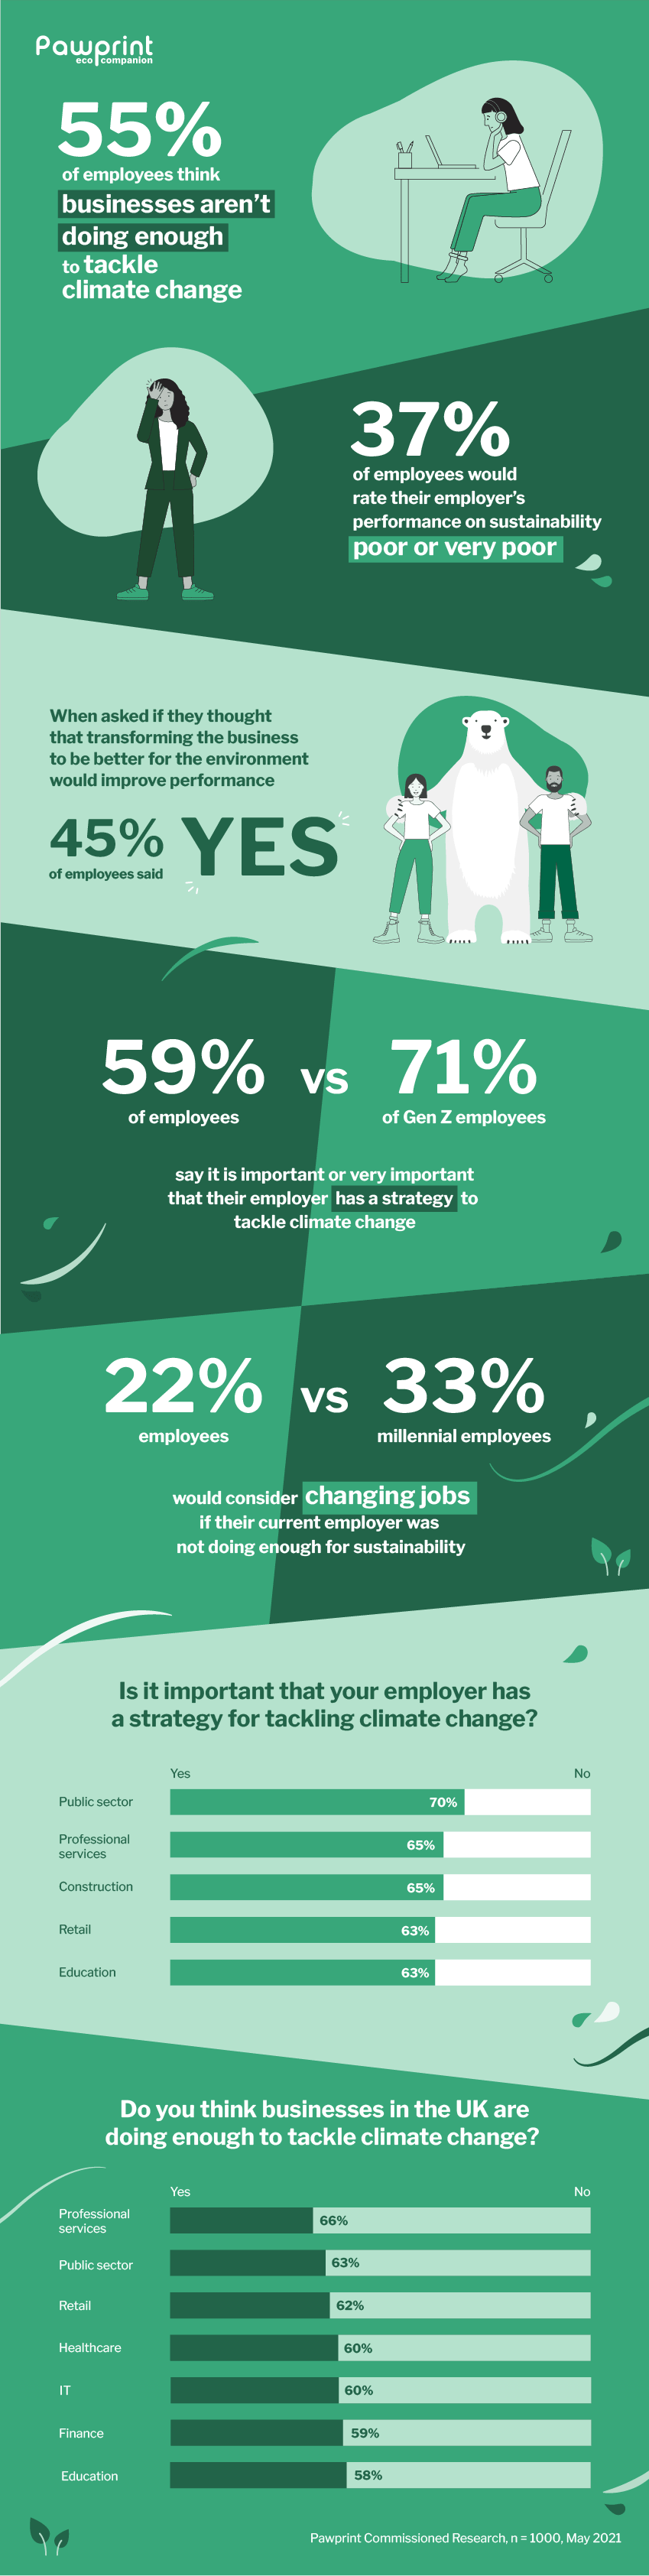 Infographic with stats from Pawprint's employee survey, 'What do you think about your employer's sustainability strategy?'